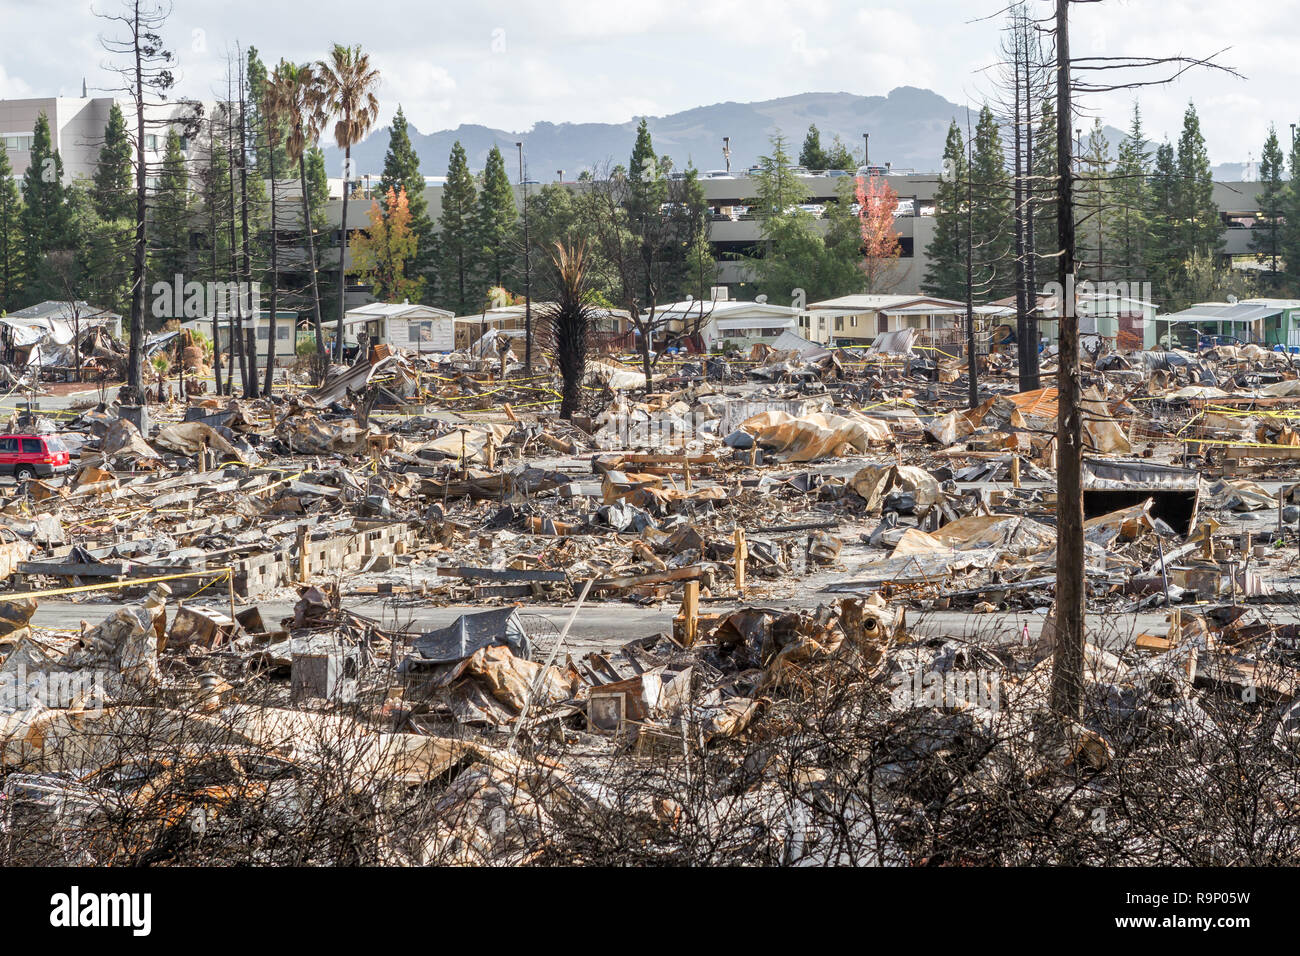 Destroyed Mobile Home Neighborhood - These images were captured in neighborhoods near Santa Rosa, California, where wildfires in early October 2017. - Stock Image